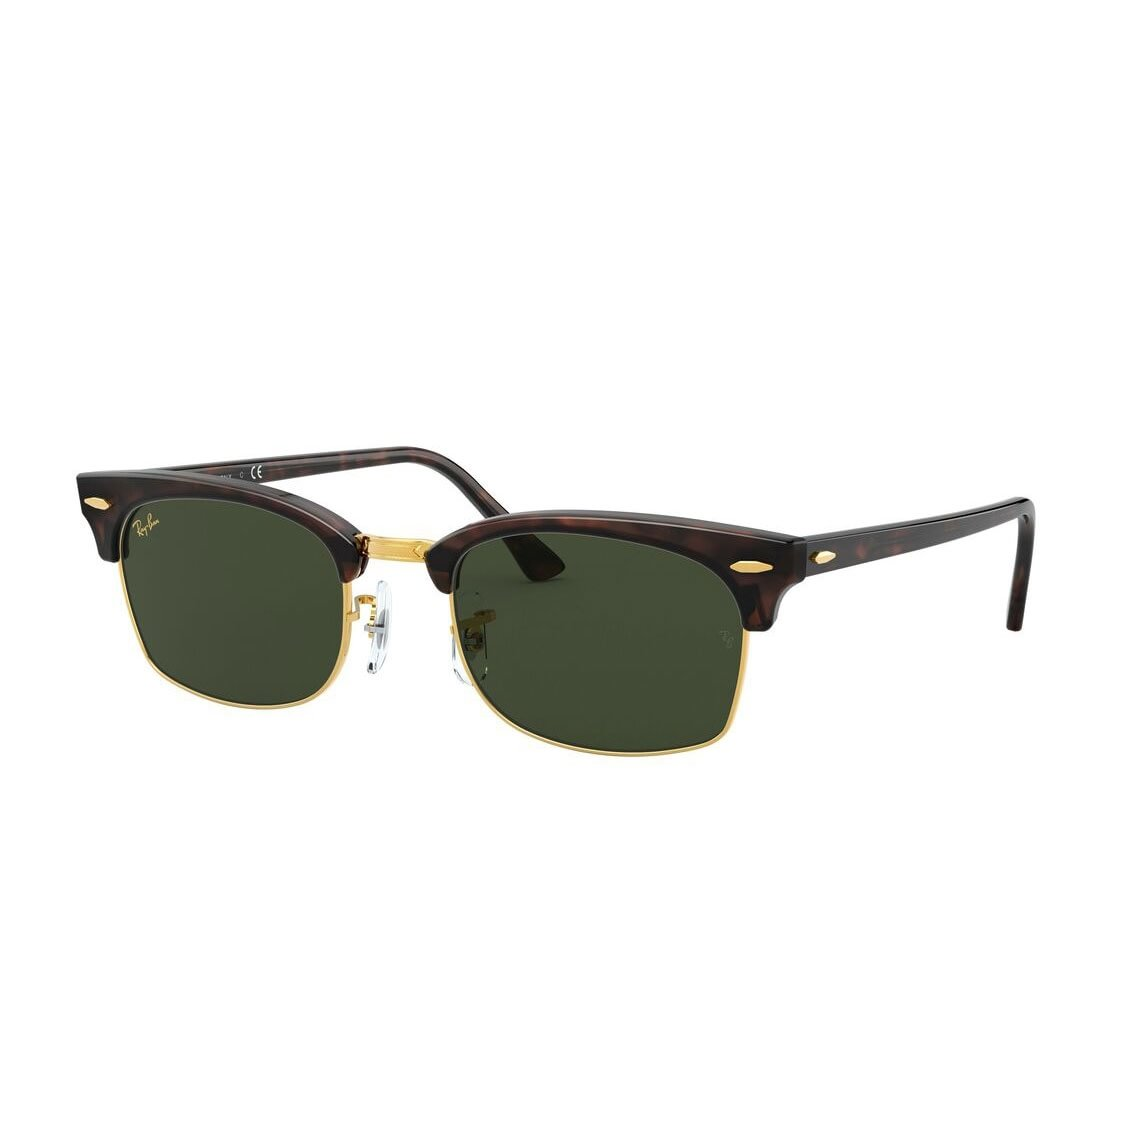 Ray-Ban Clubmaster Square Legend Gold RB3916 130431 5221